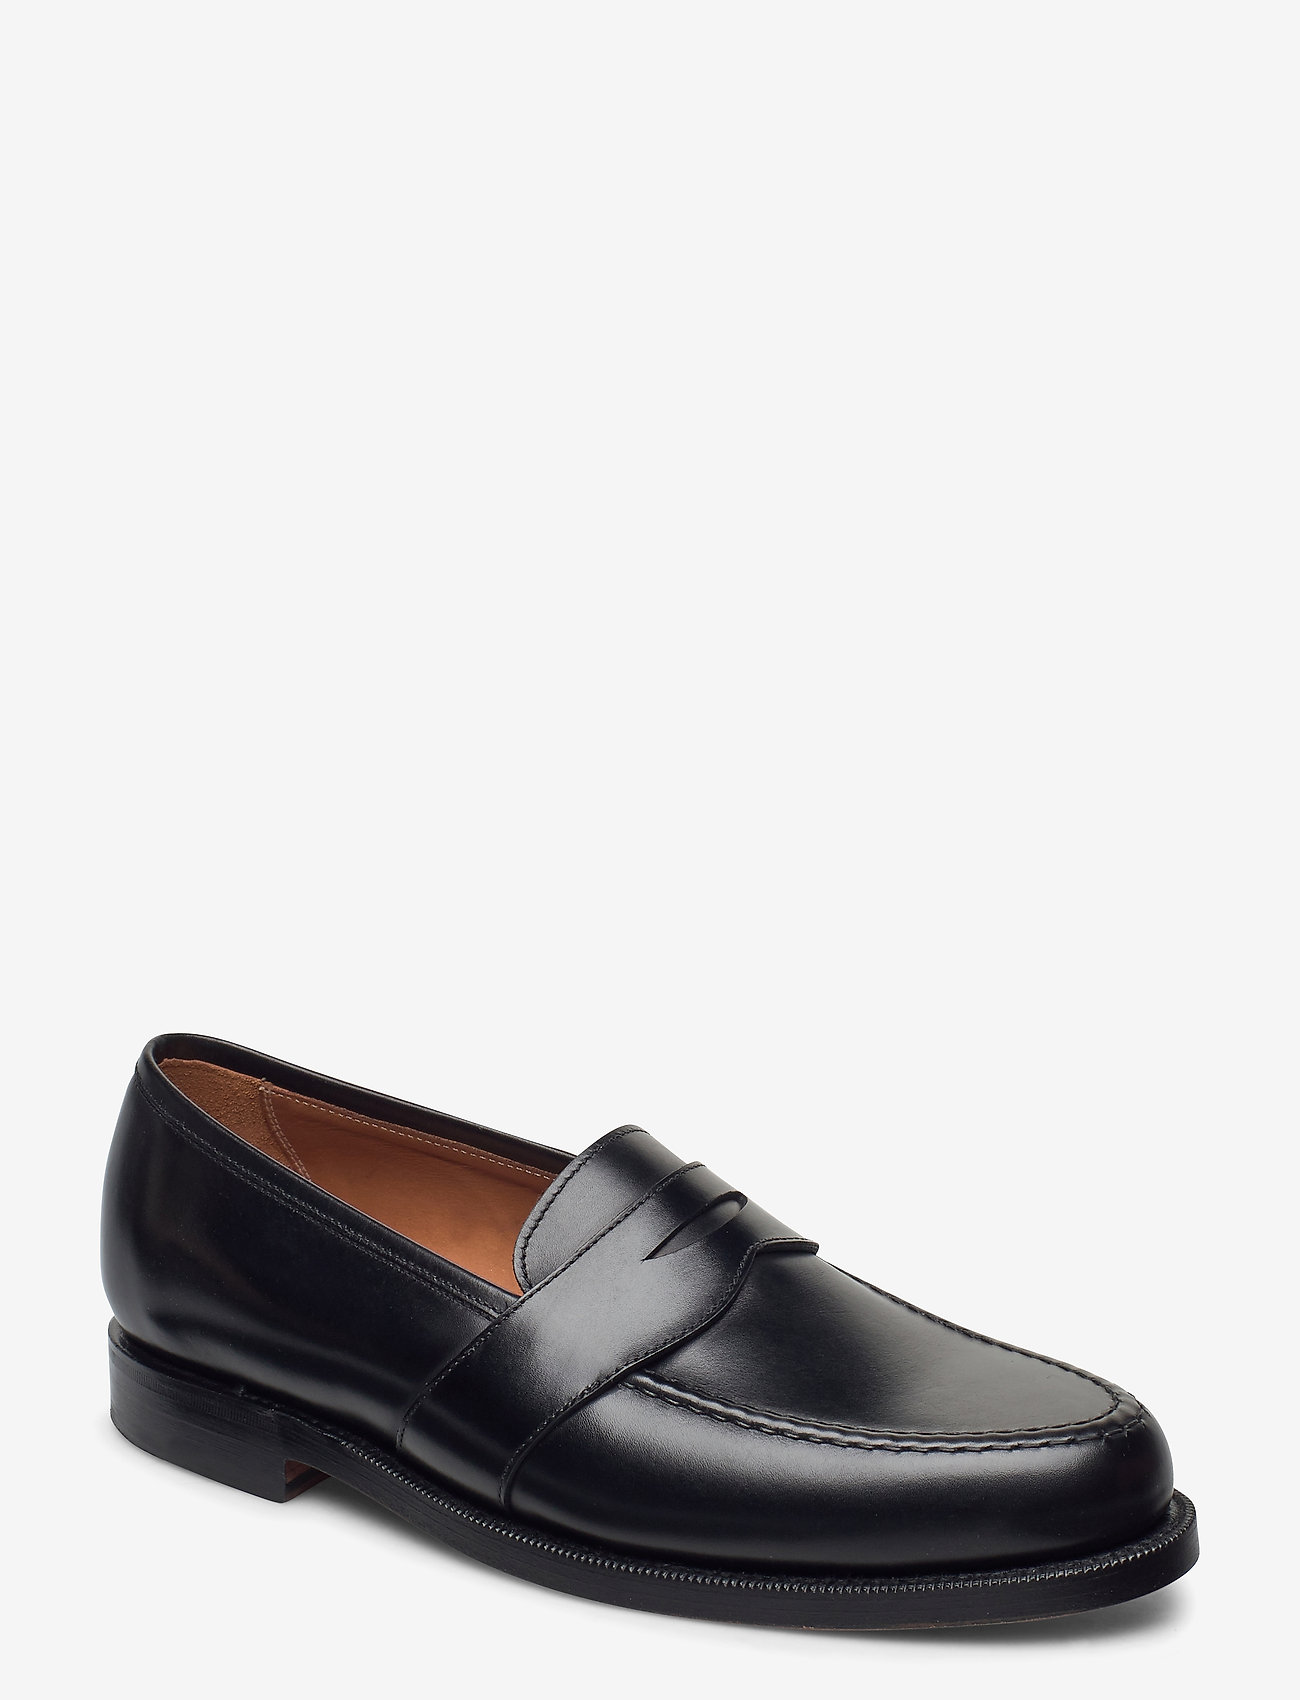 Polo Ralph Lauren - Braygan Calfskin Penny Loafer - loafers - black - 0